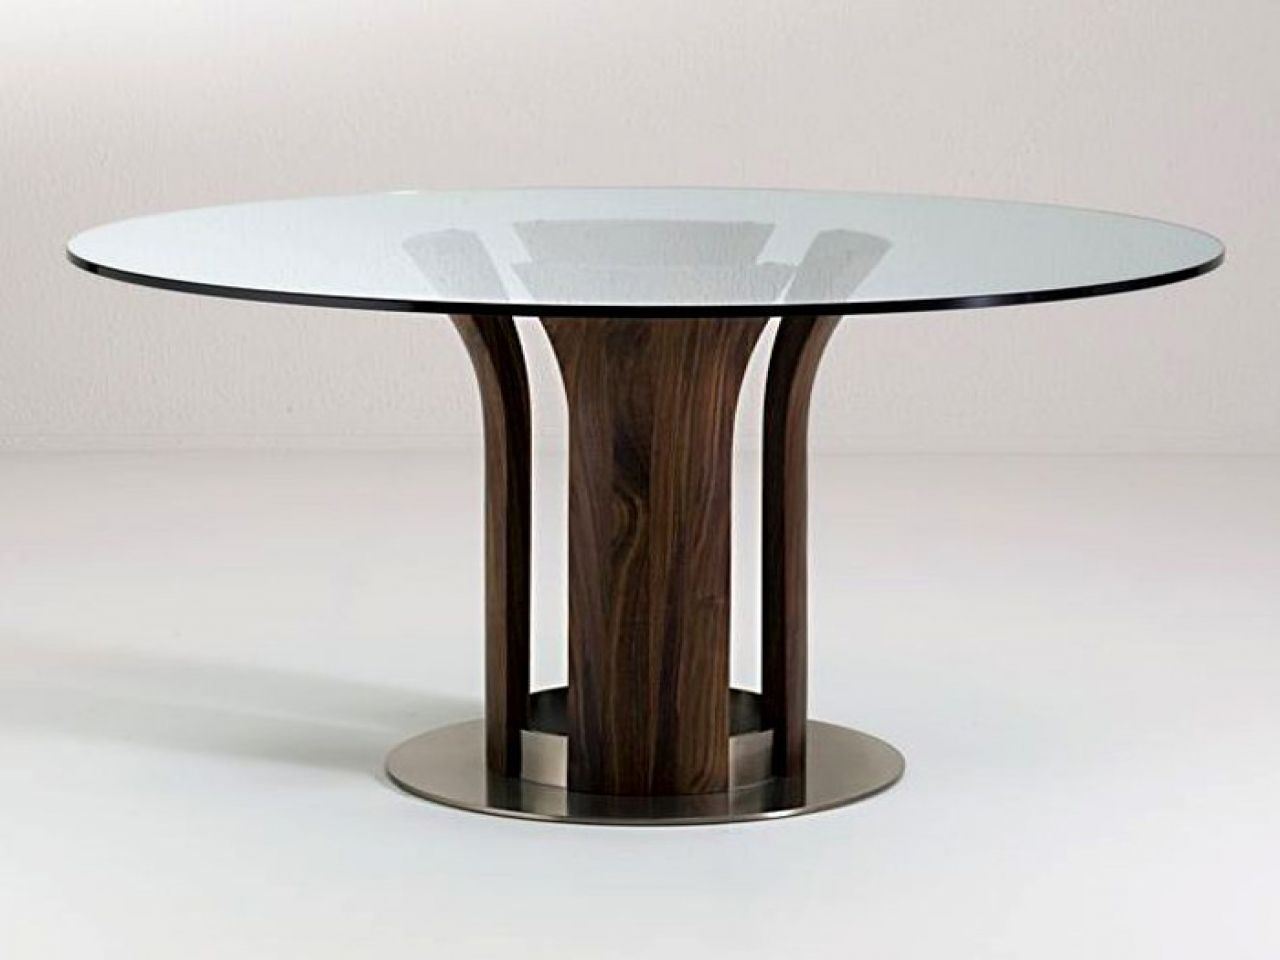 Top Dining Table Glass Tables With Wood Base Room For Glass Table Glass Dining Table Glass Round Dining Table